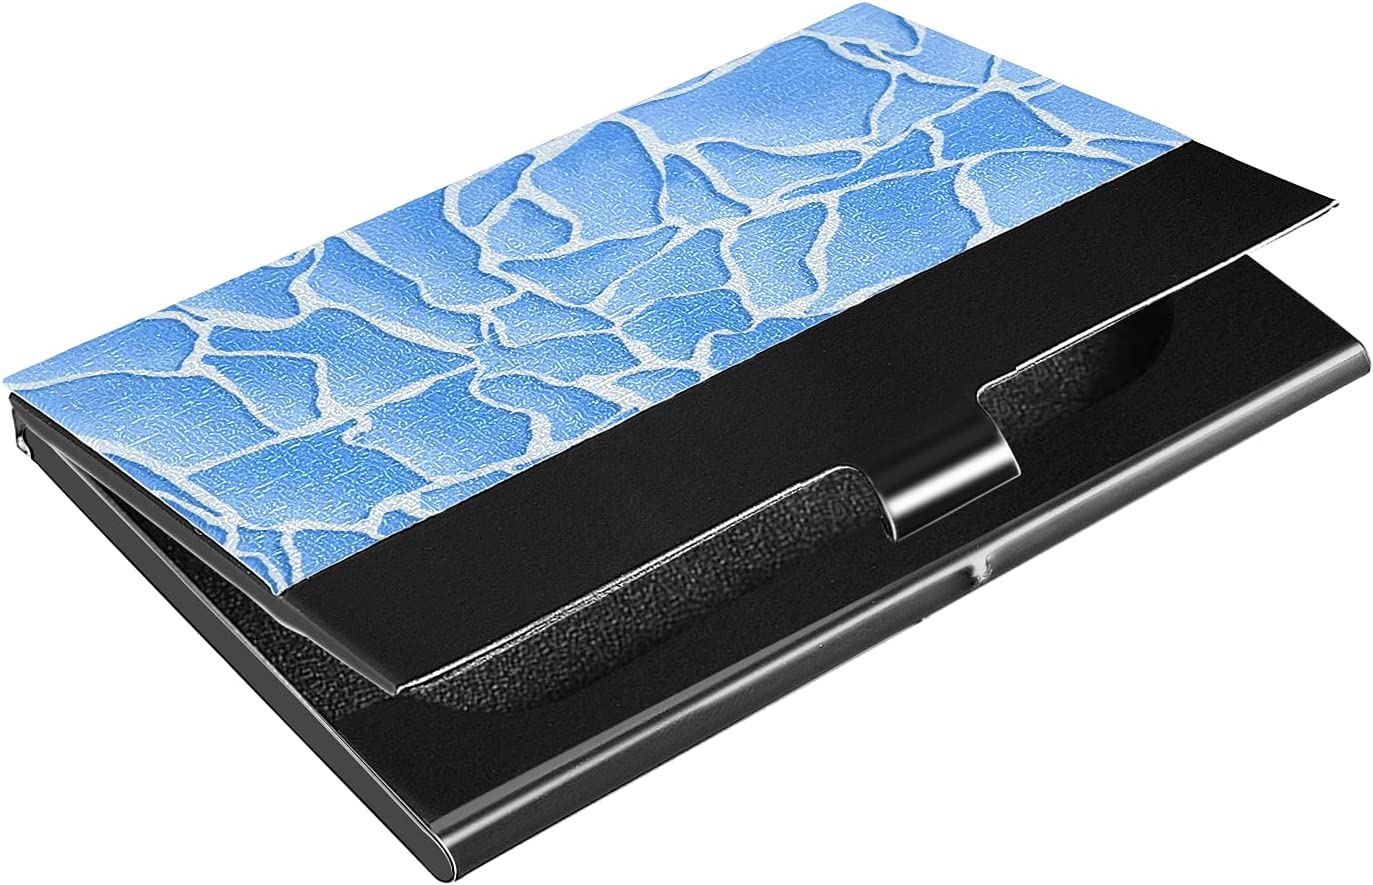 OTVEE Water Lines Business Card Holder Wallet Stainless Steel & Leather Pocket Business Card Case Organizer Slim Name Card ID Card Holders Credit Card Wallet Carrier Purse for Women Men